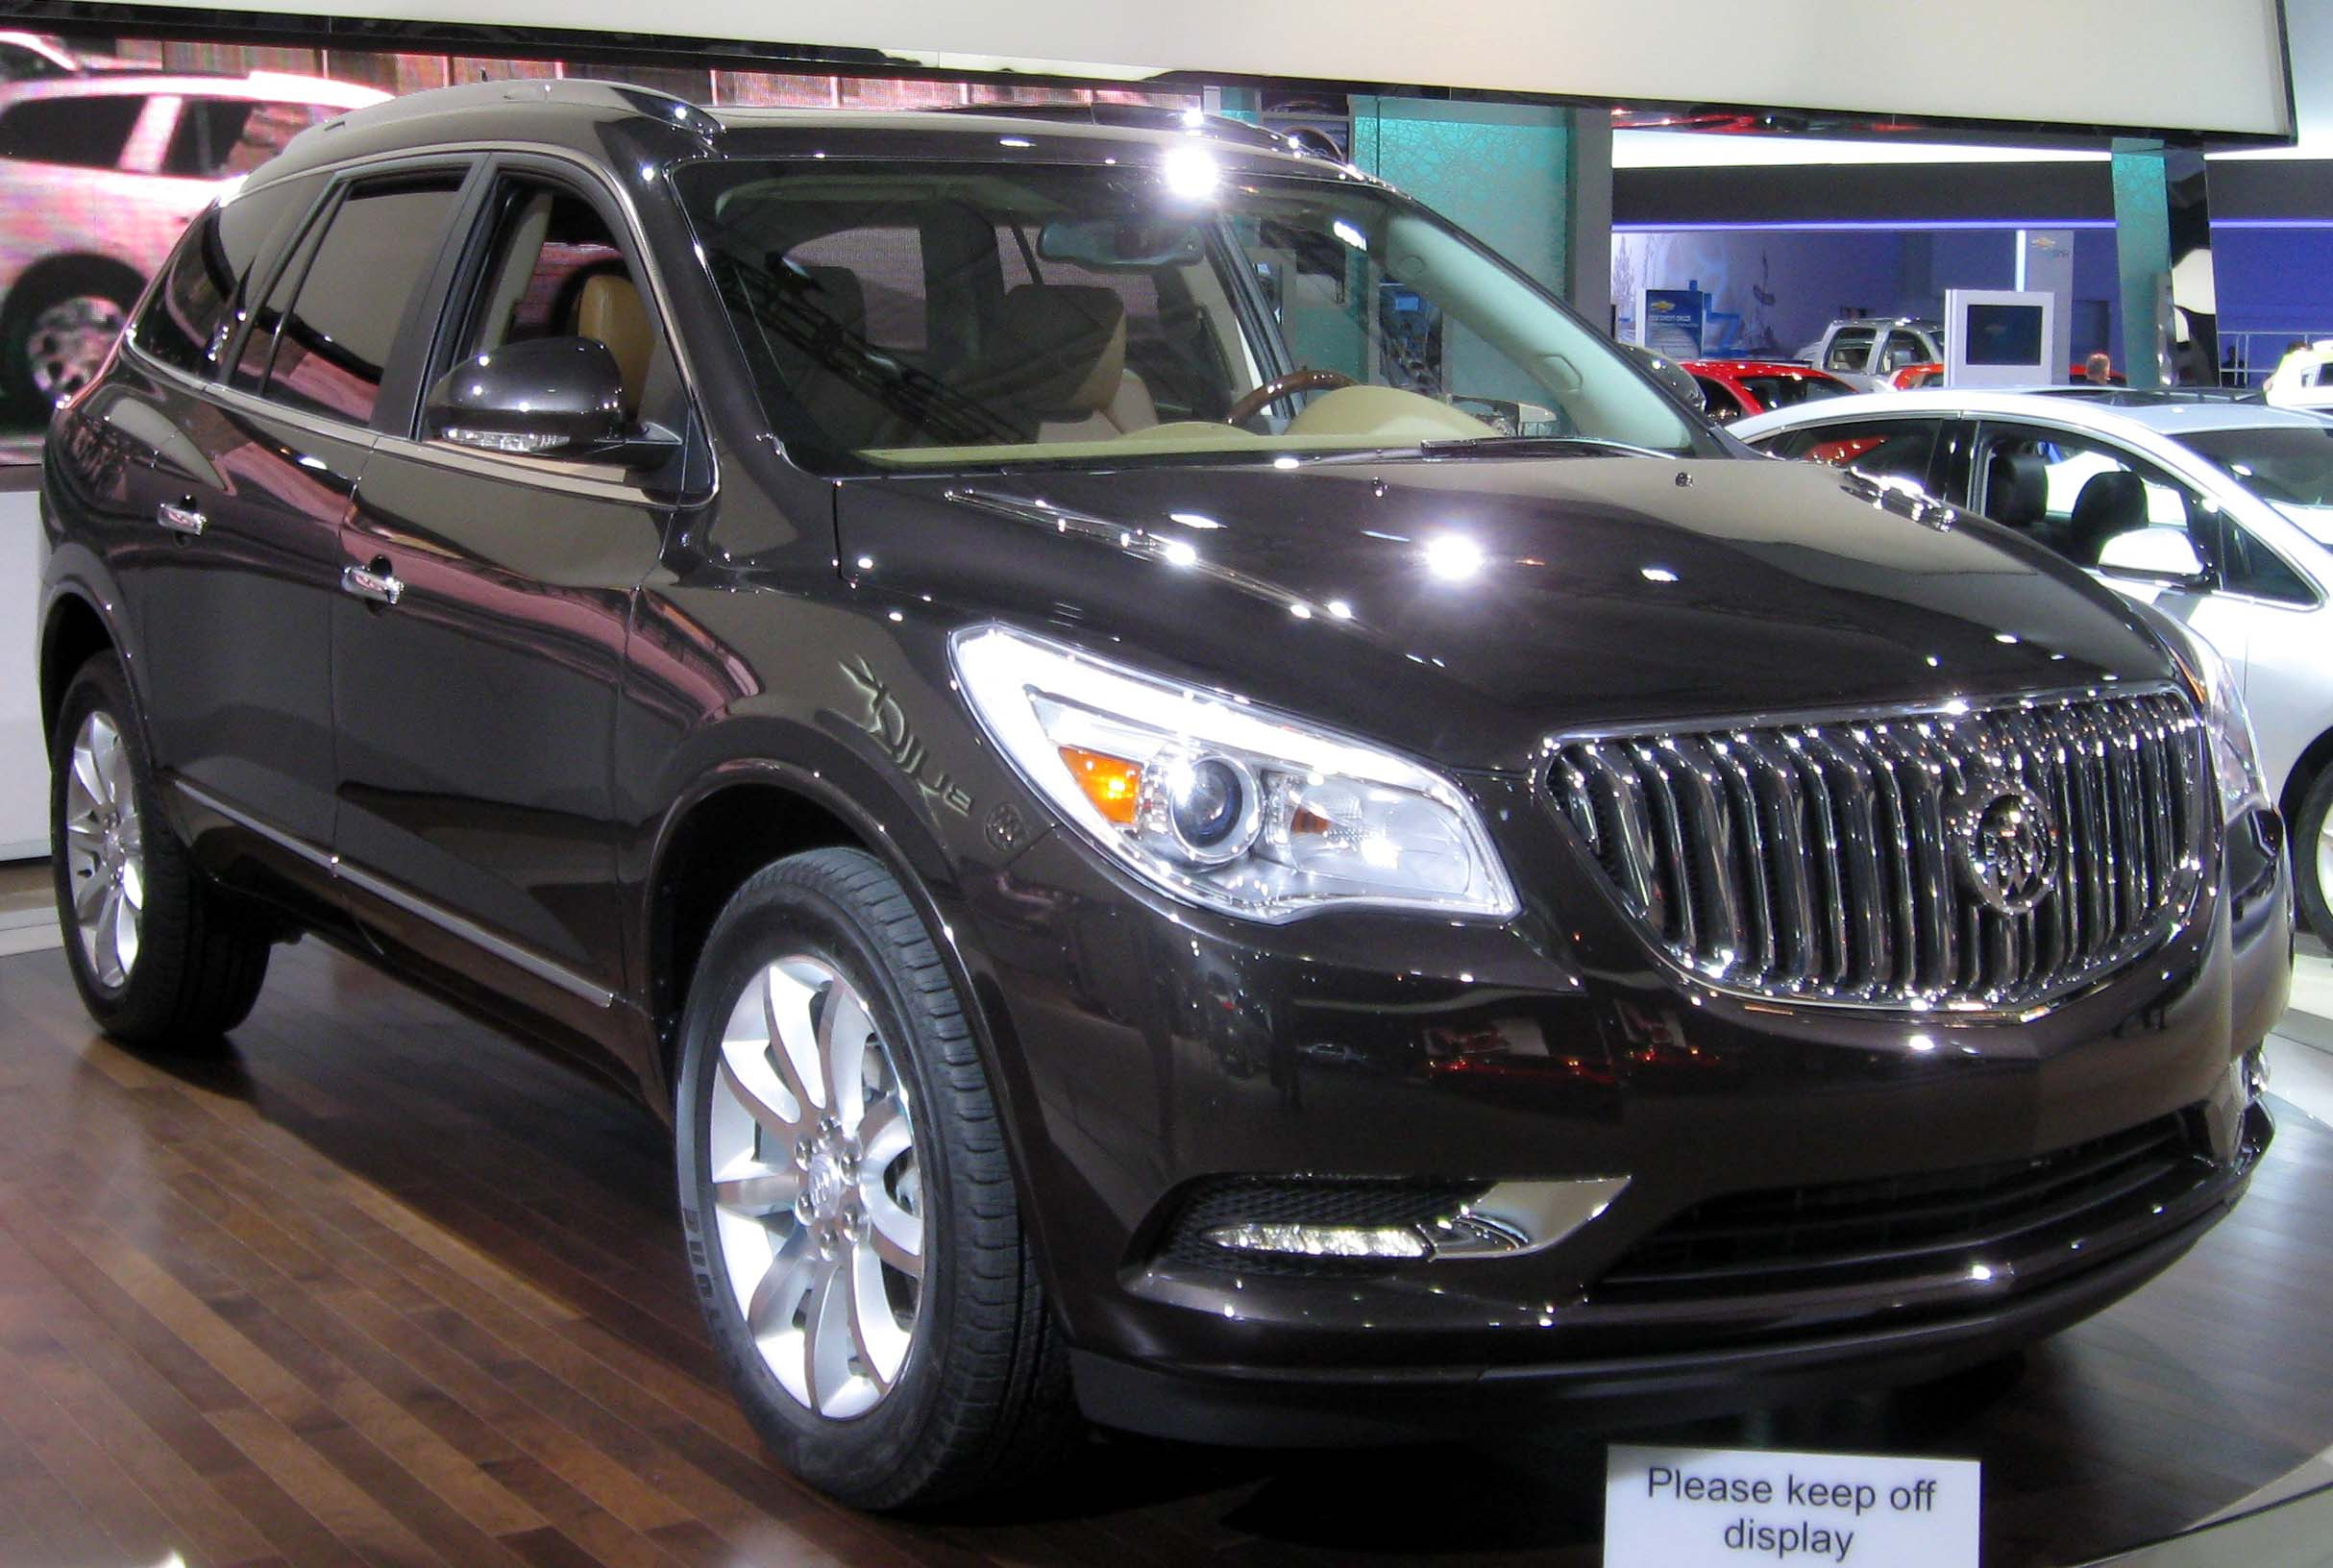 File2013 Buick Enclave  2012 NYIAS 2JPG  Wikimedia Commons